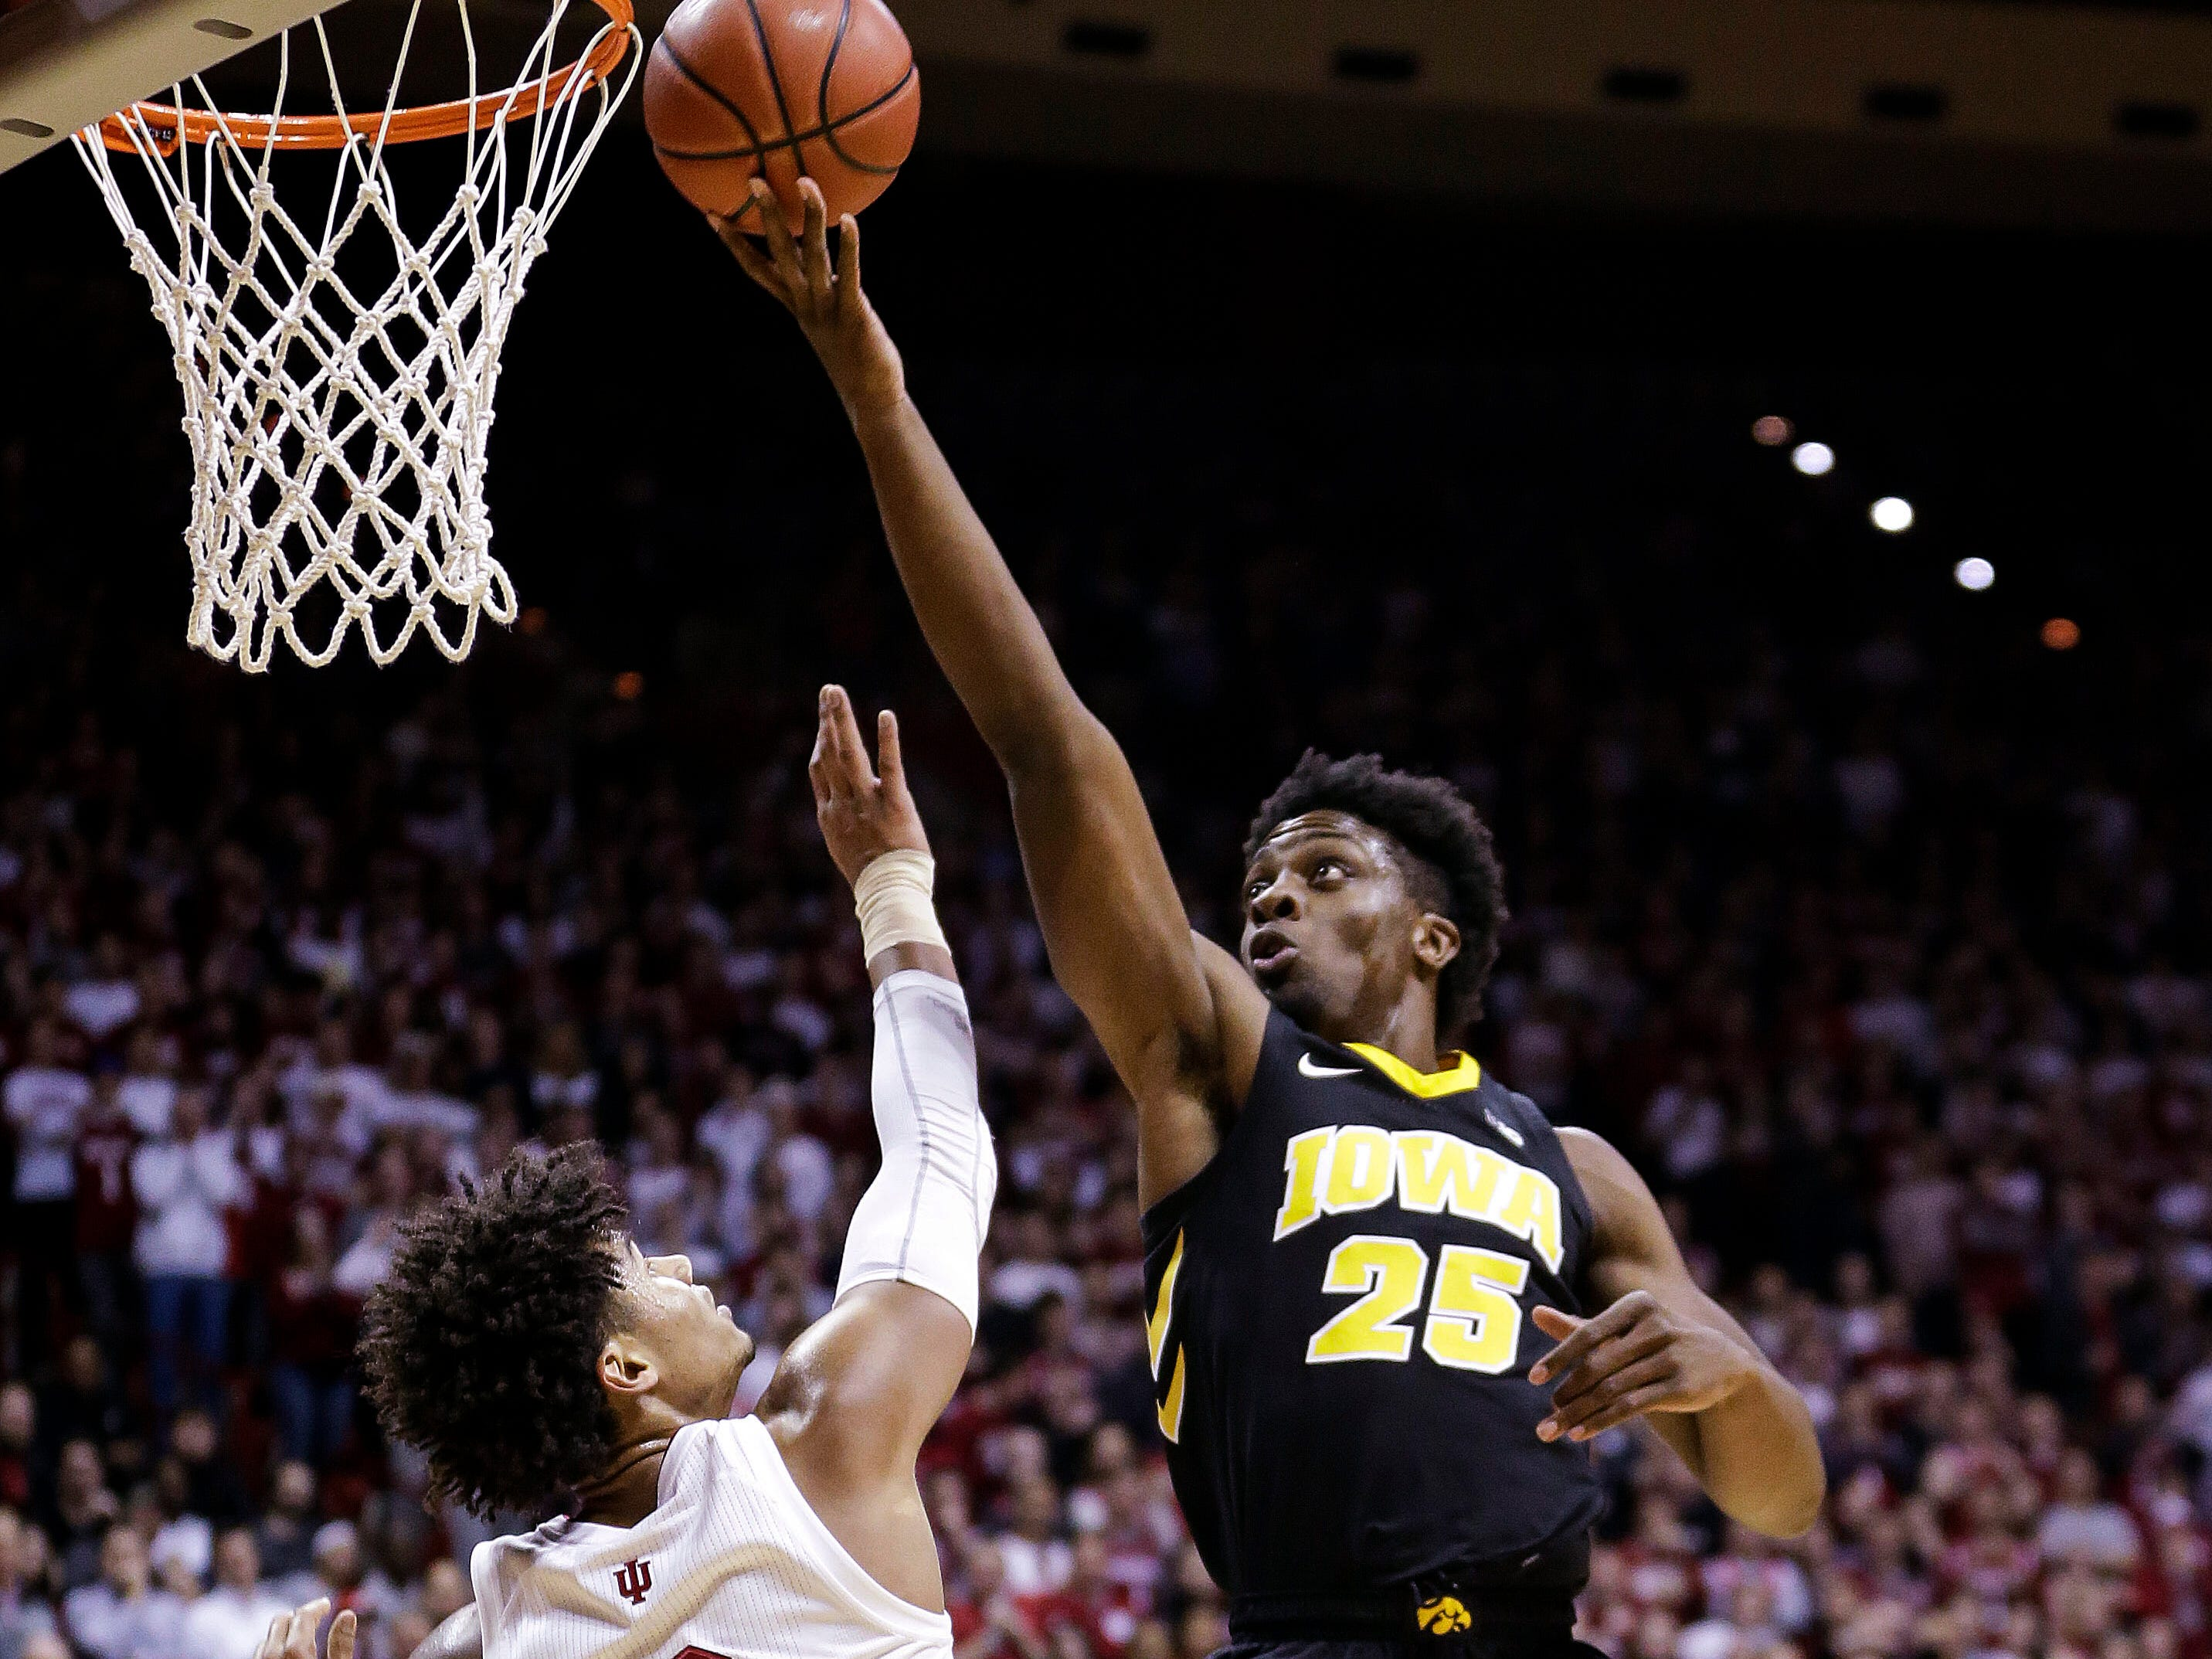 Iowa forward Tyler Cook (25) shoots over Indiana forward Justin Smith (3) during the first half of an NCAA college basketball game in Bloomington, Ind., Thursday, Feb. 7, 2019.